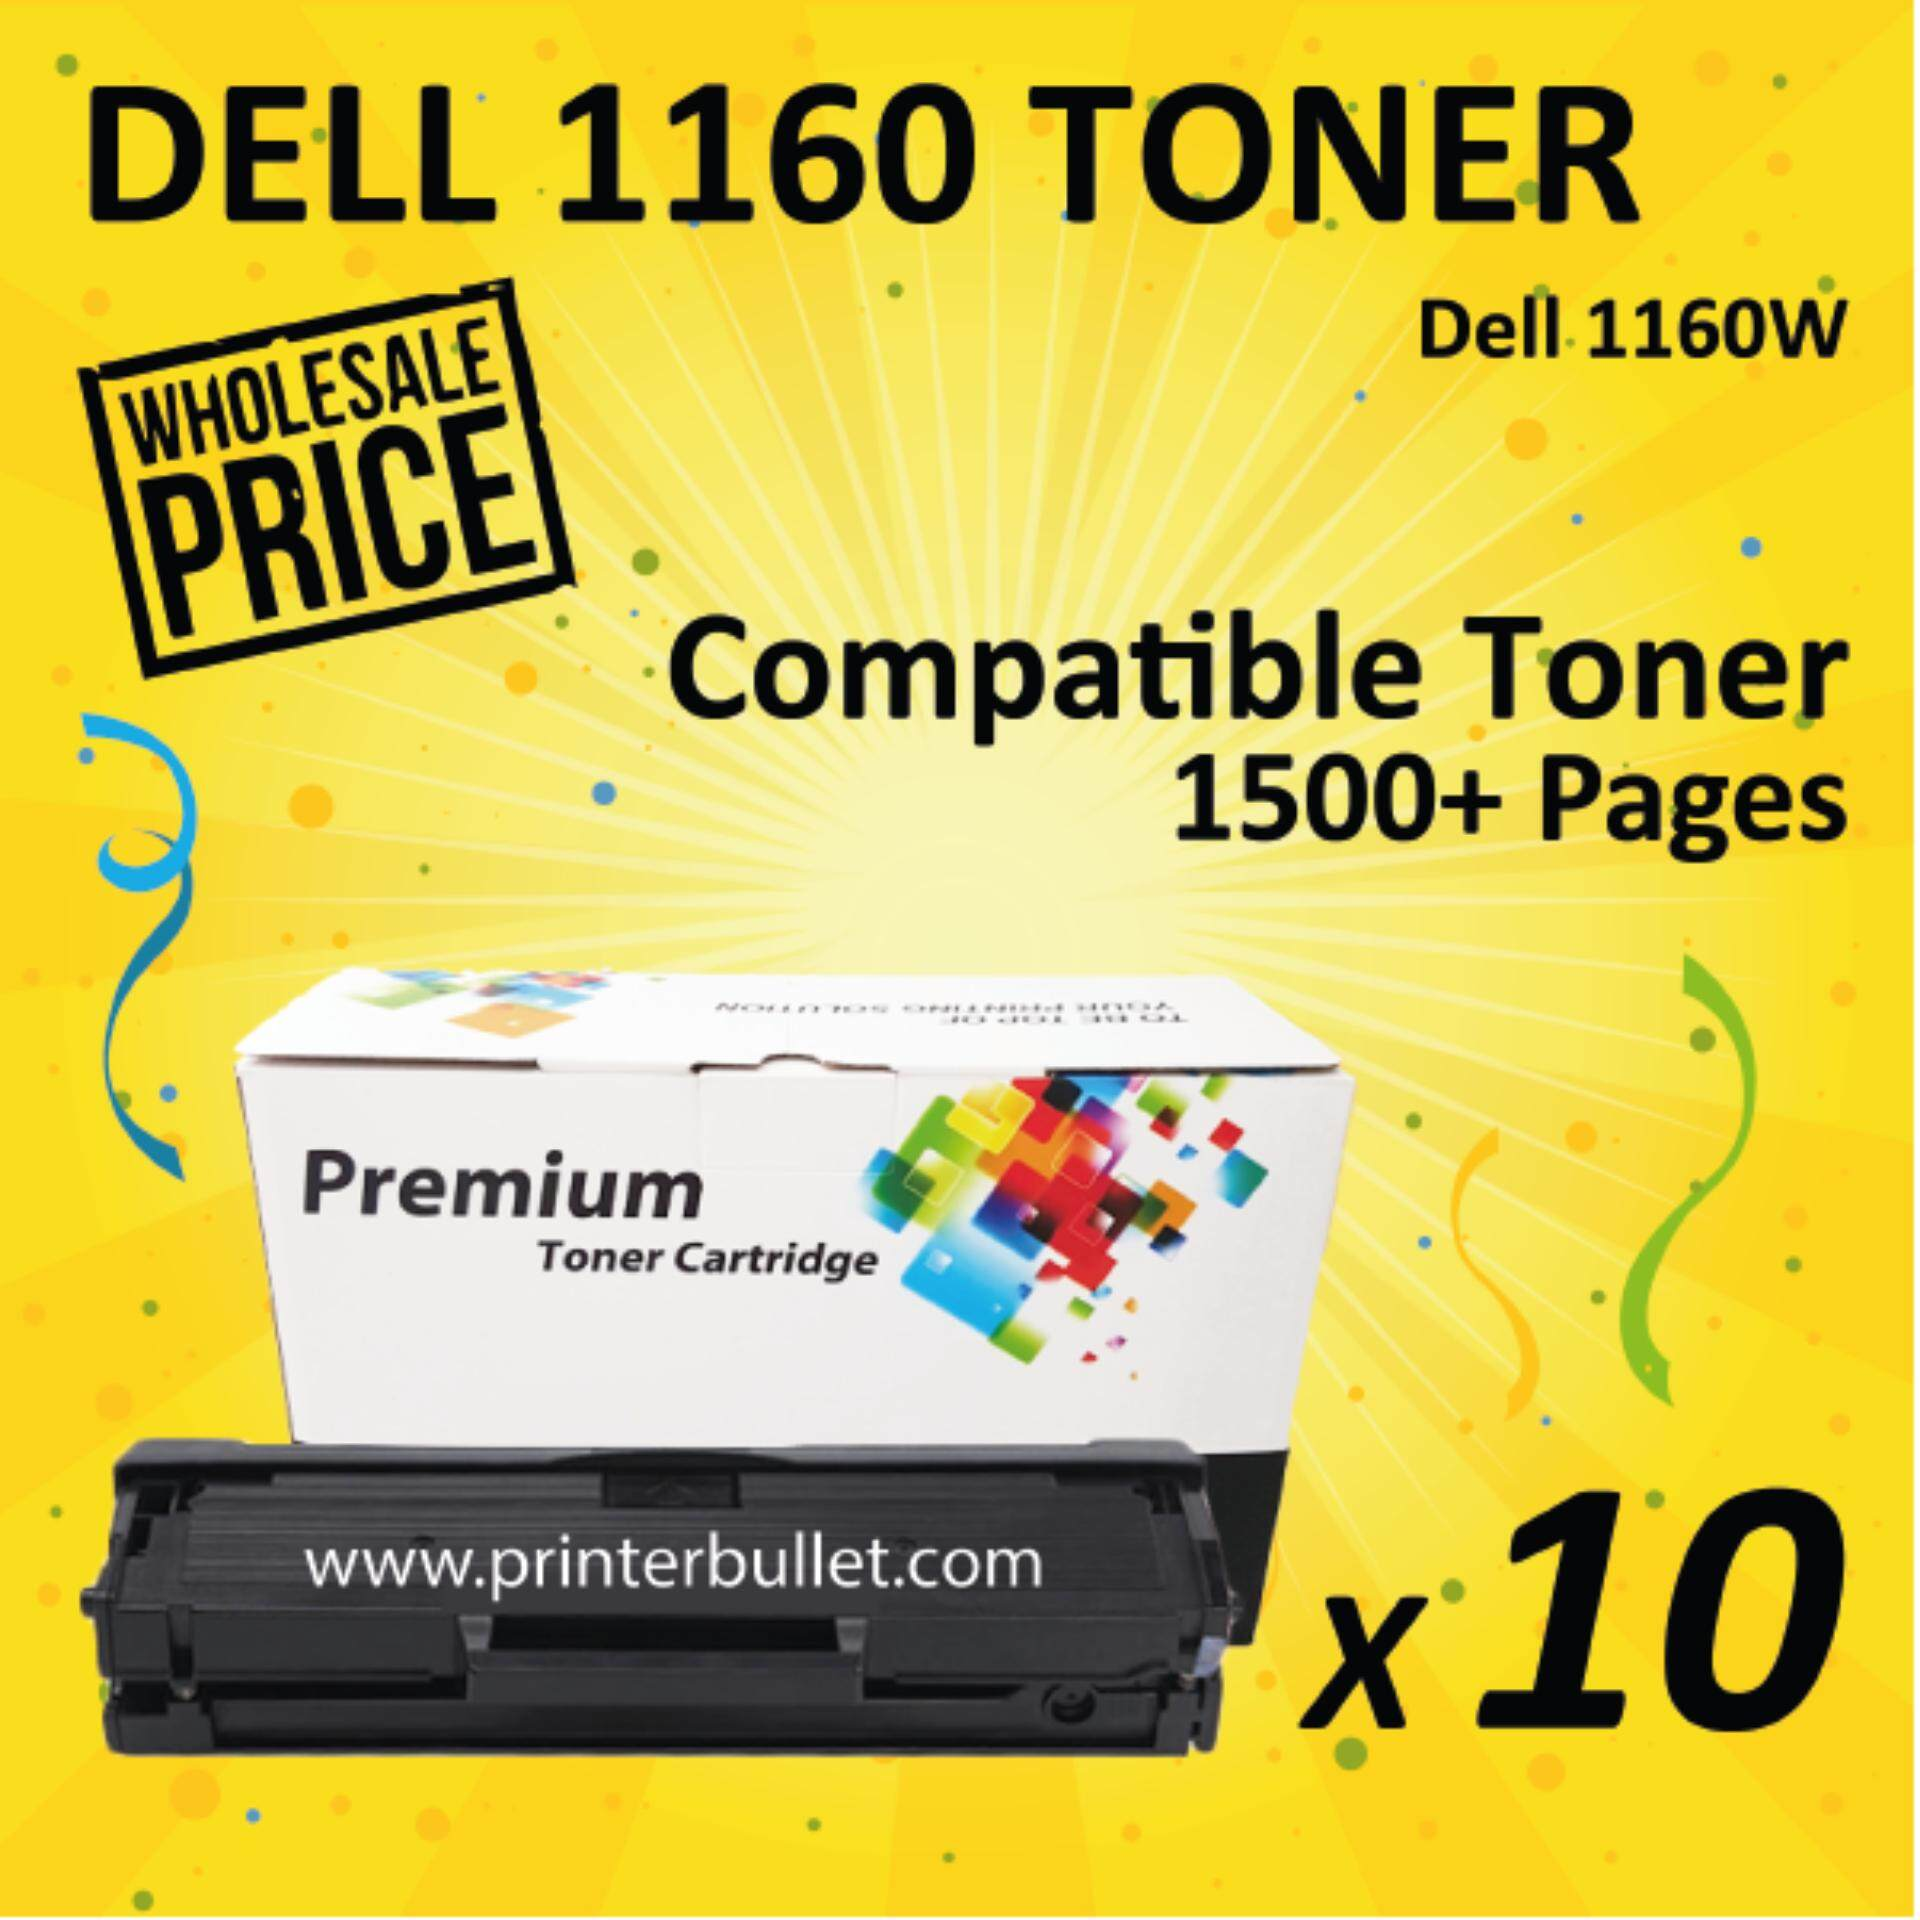 10 unit Dell B1160 / B1160w / B1163 / B1163w / B1165 / B1165nfw Compatible Laser Toner Cartridge